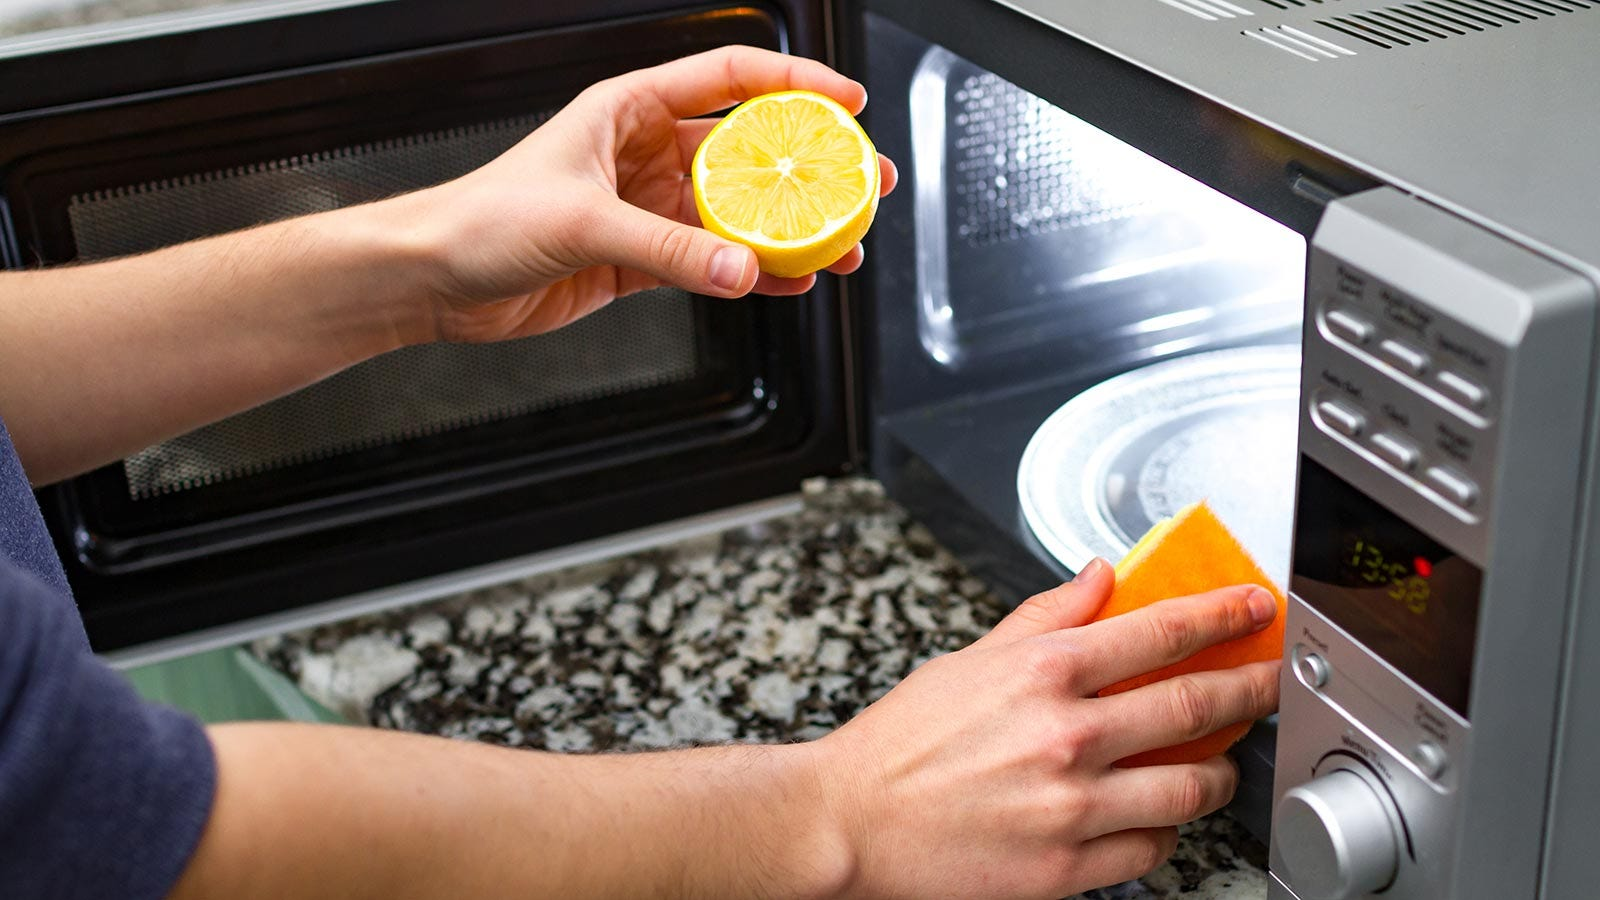 A woman cleaning her microwave with a lemon and sponge.